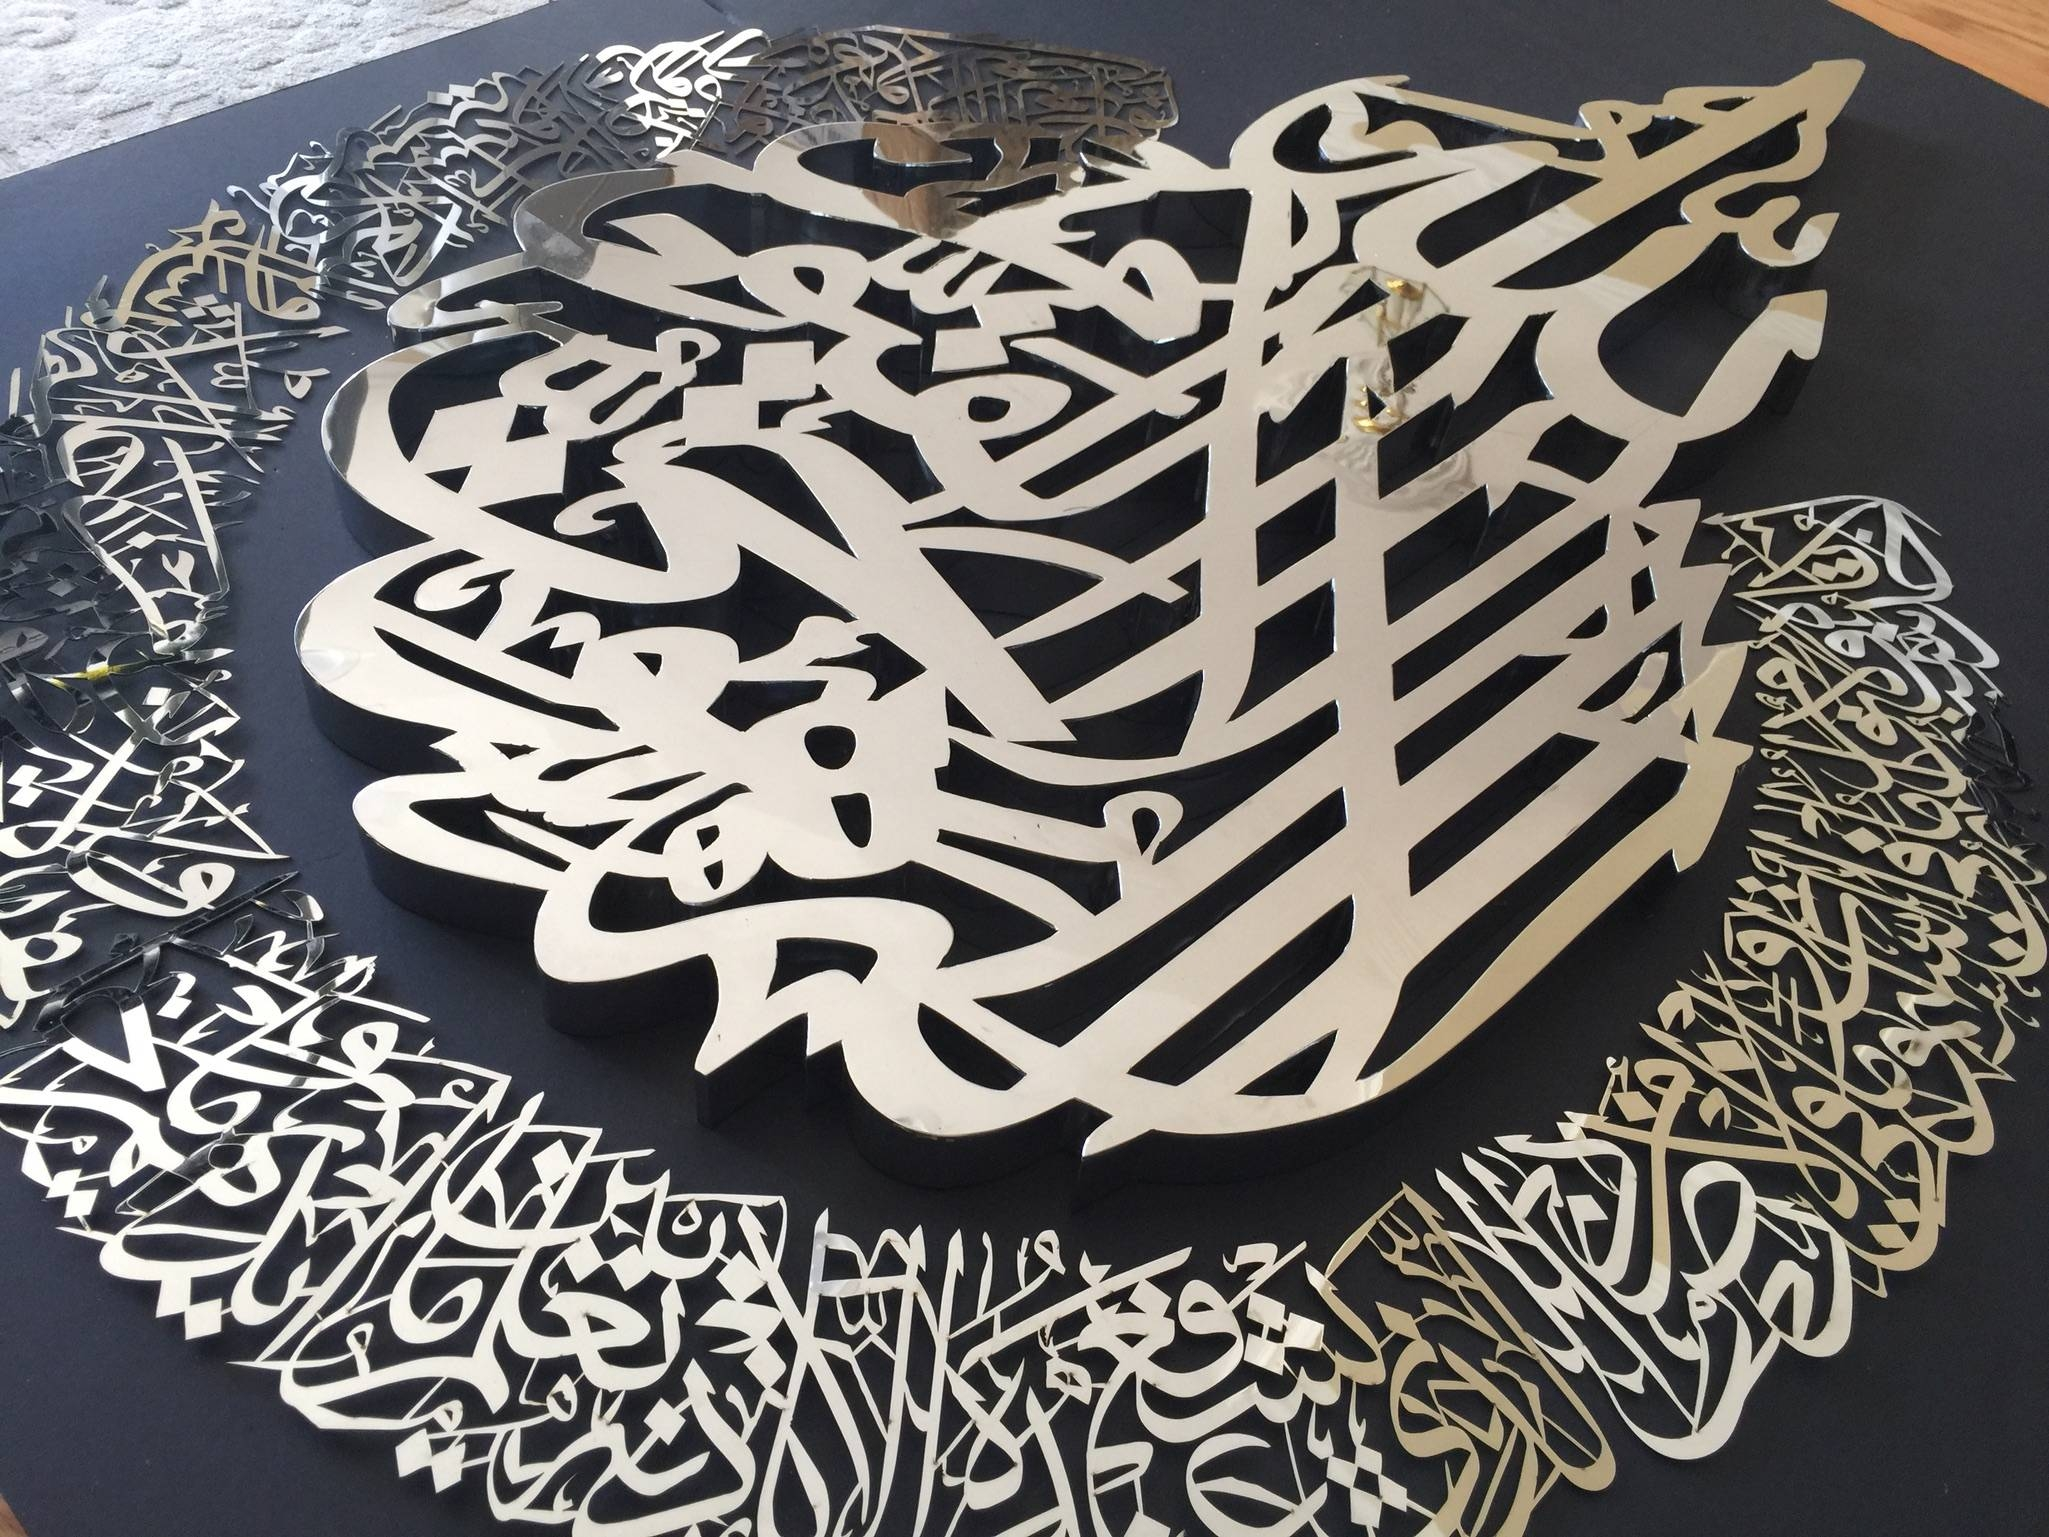 Ayatul Kursi  Stainless Steel Modern Islamic Wall Art Arabic Within Most Recently Released Islamic Metal Wall Art (View 3 of 20)